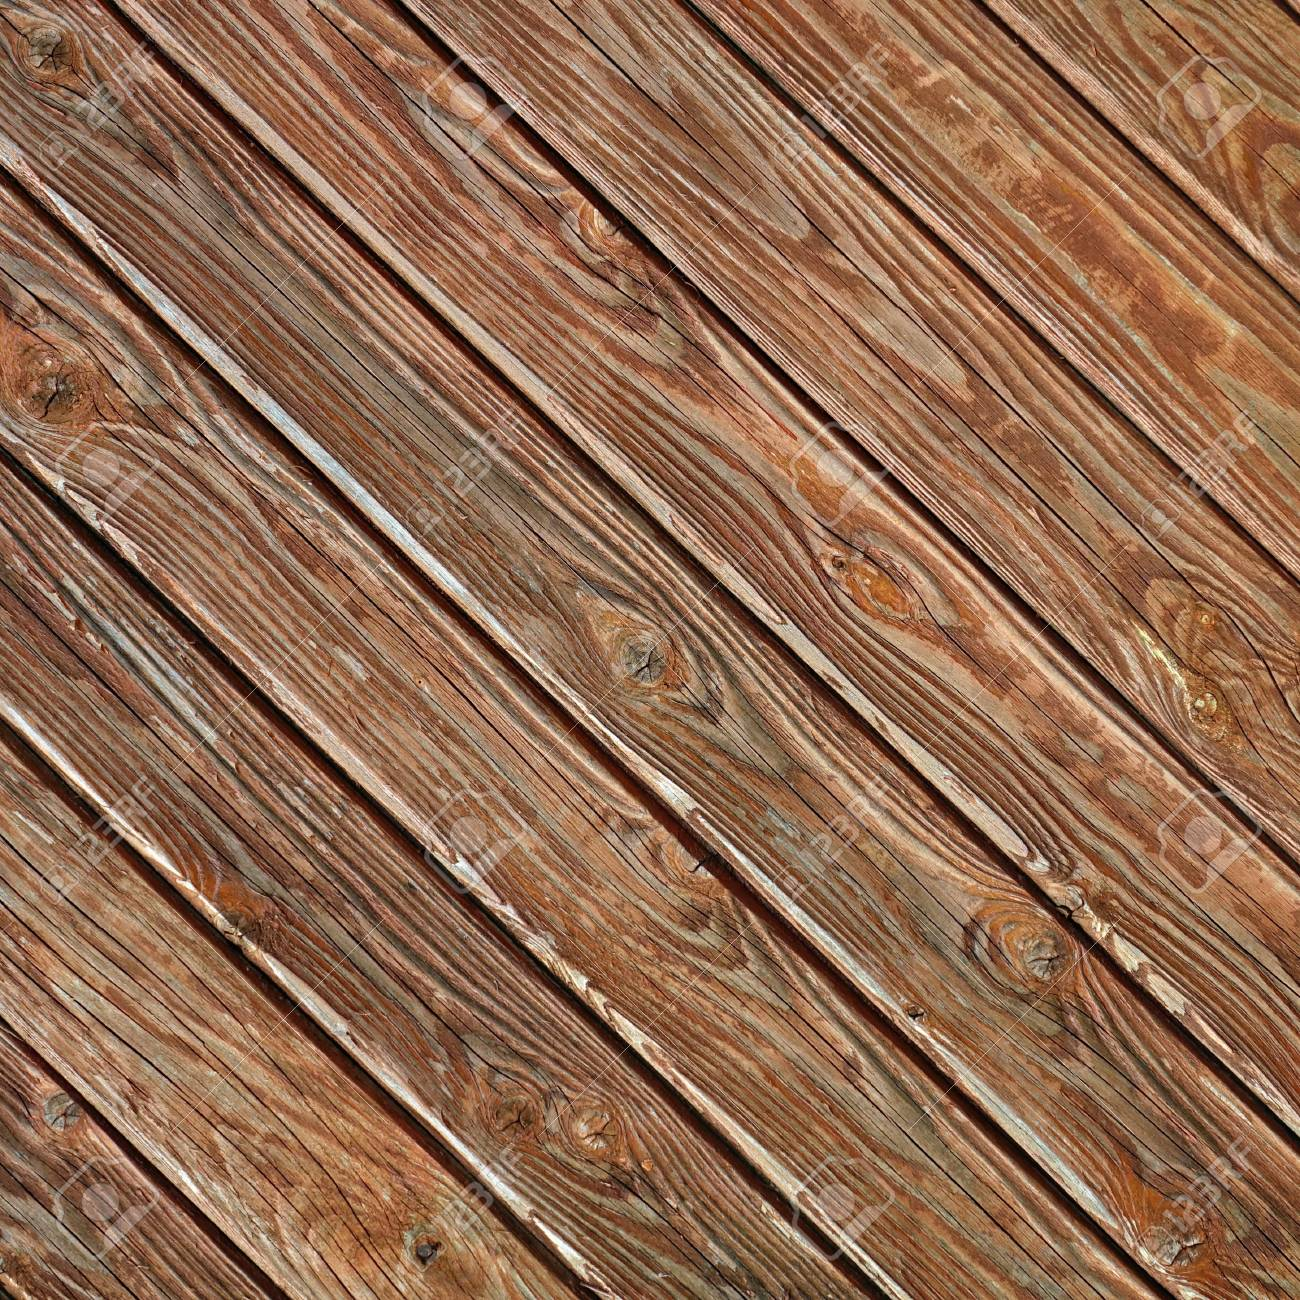 Tiled Wooden Wall Planking Frame Texture Old Rustic Wood Slats